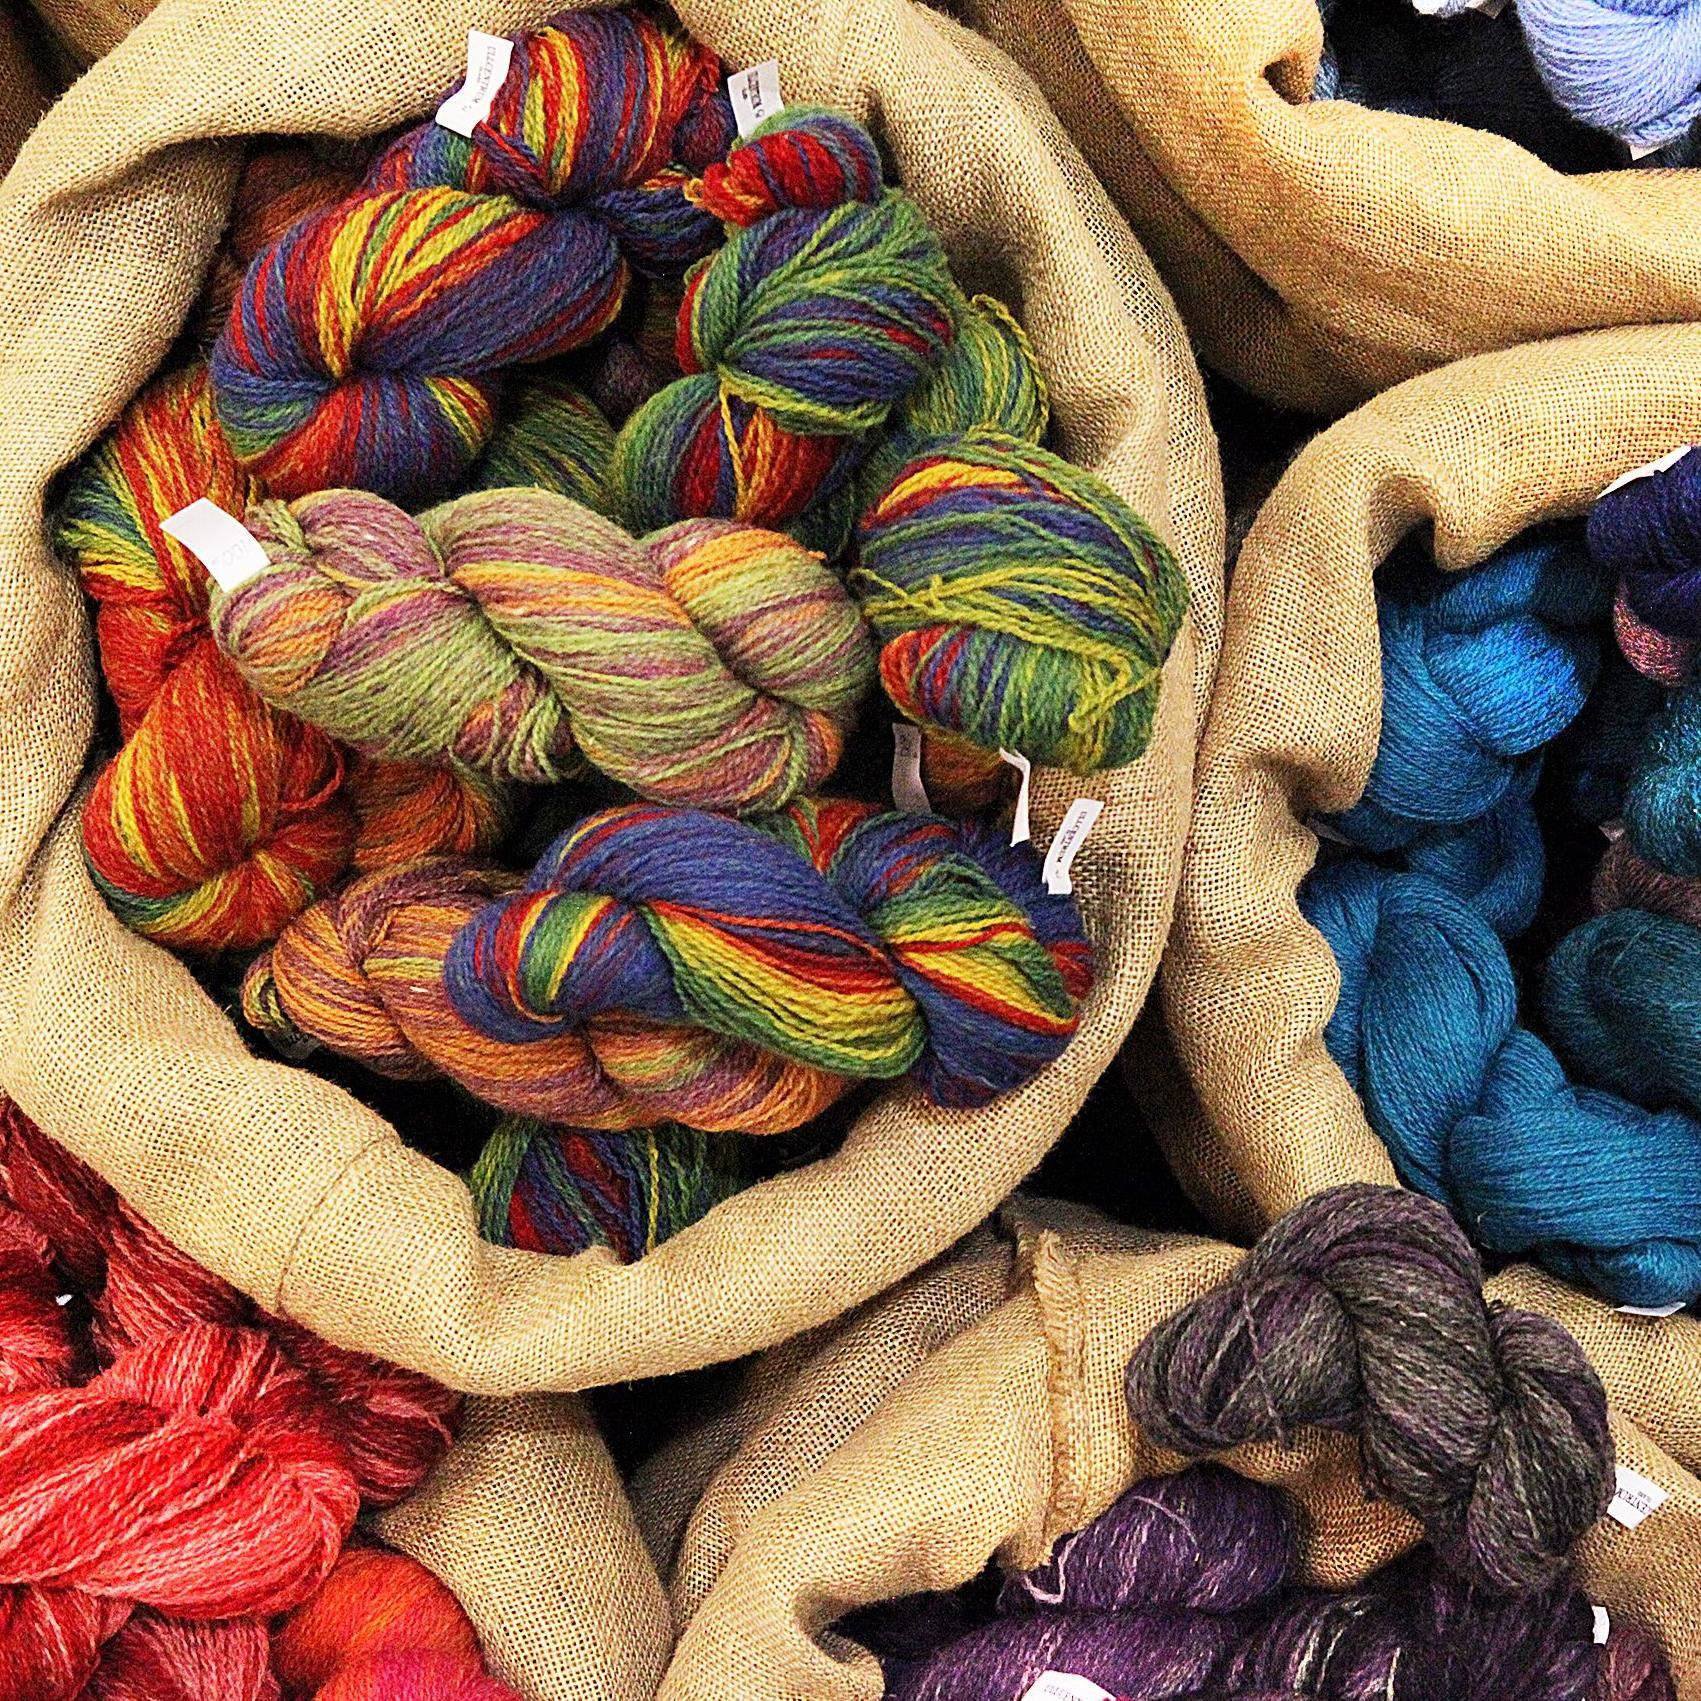 Sewing & Handicraft Festival